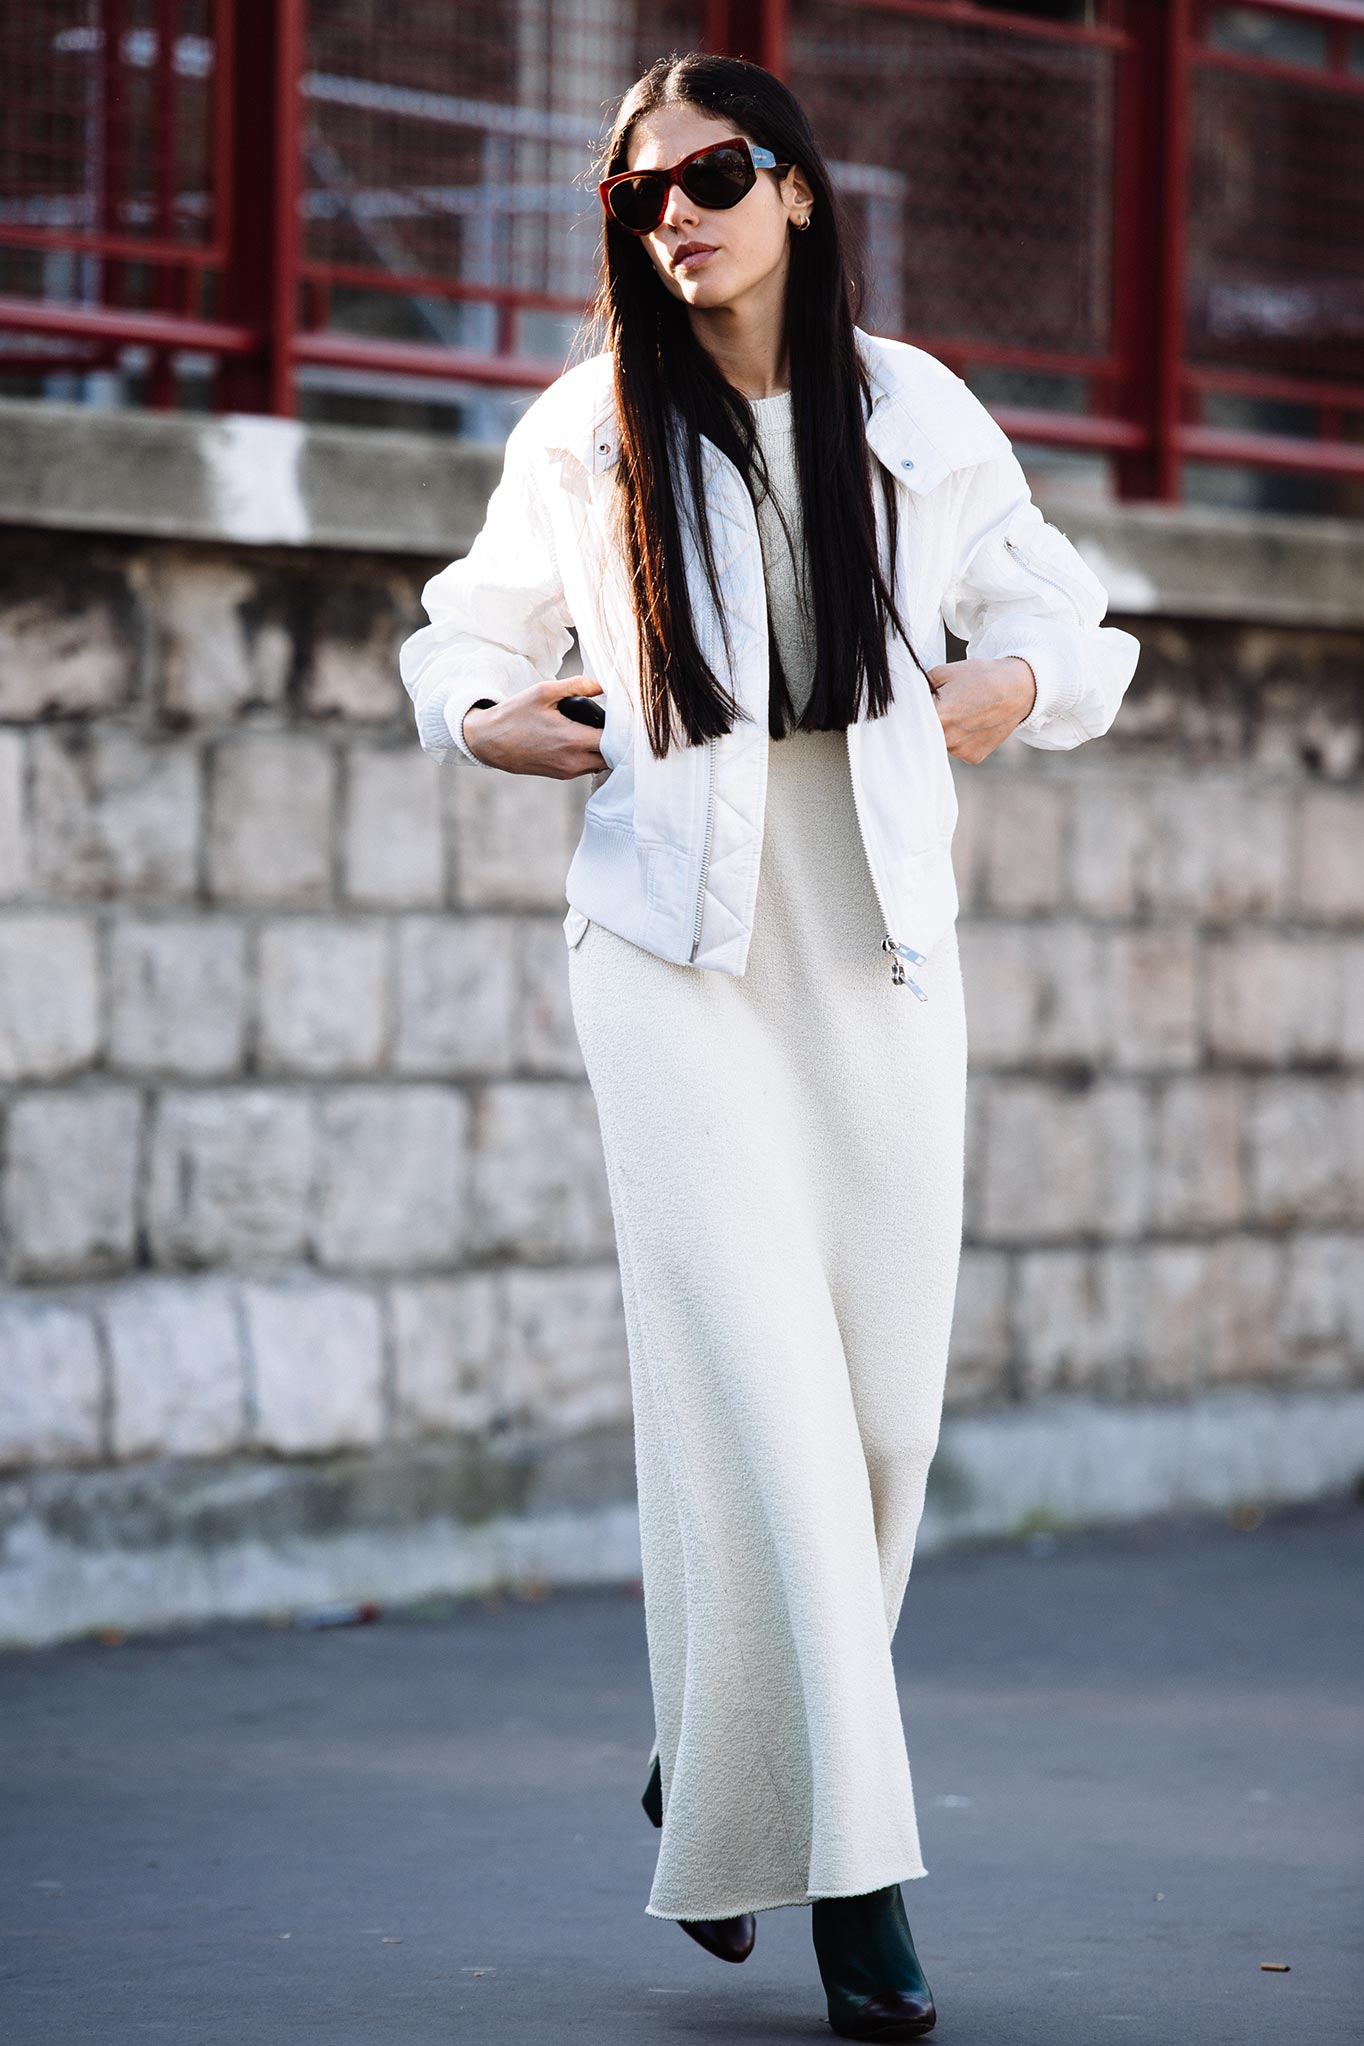 Gilda Ambrosio at Paris Fashion Week Fall/Winter 2015